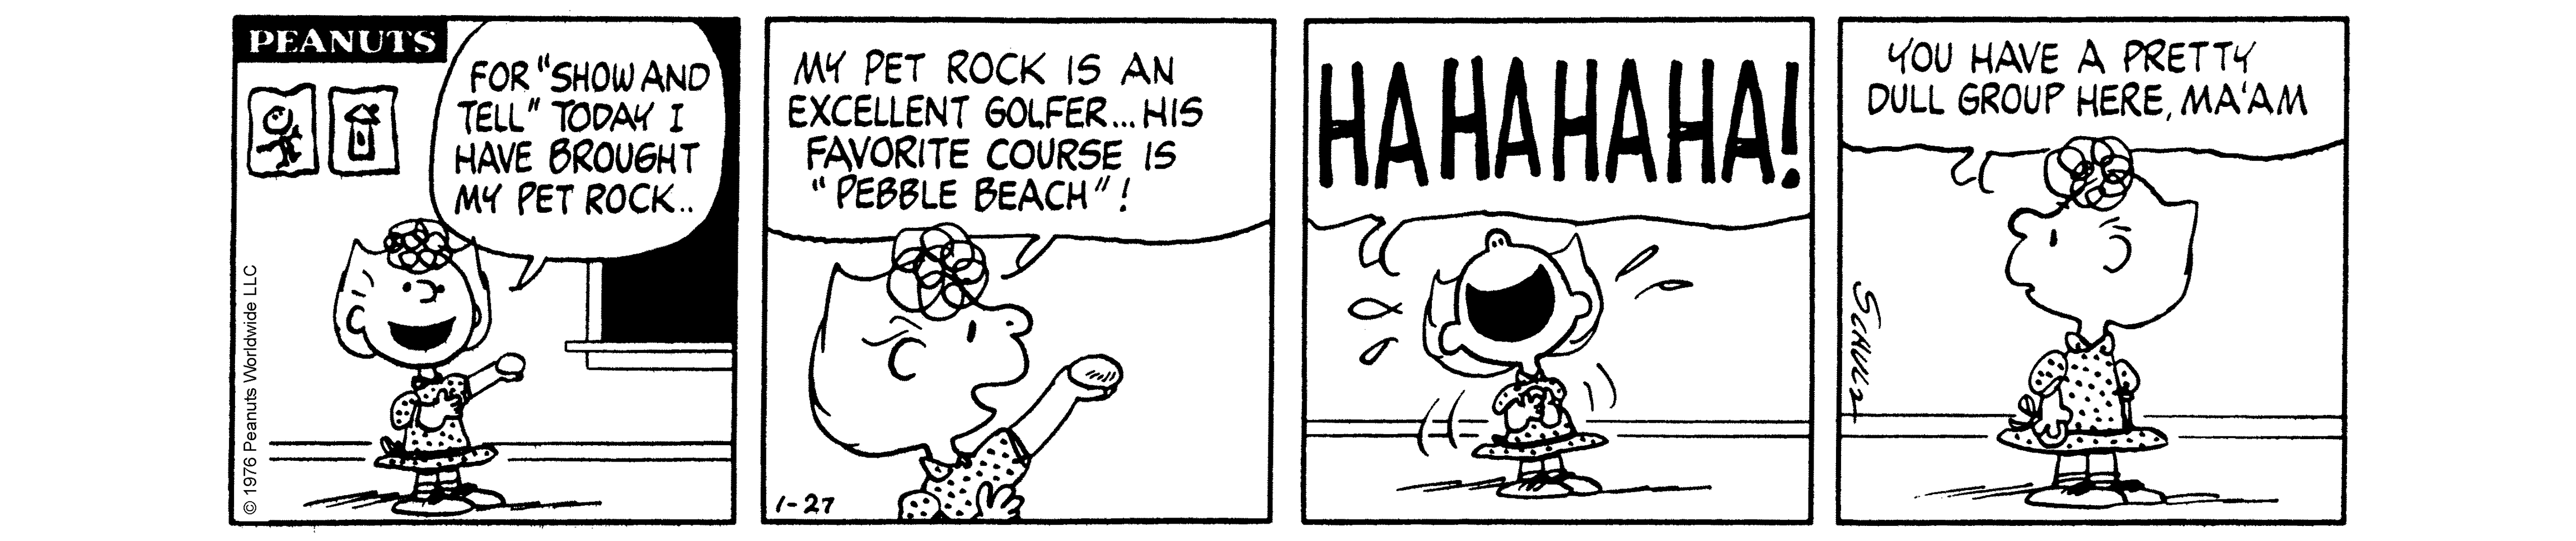 A black and white comic strip of a girl holding a rock in her hand and a girl laughing.